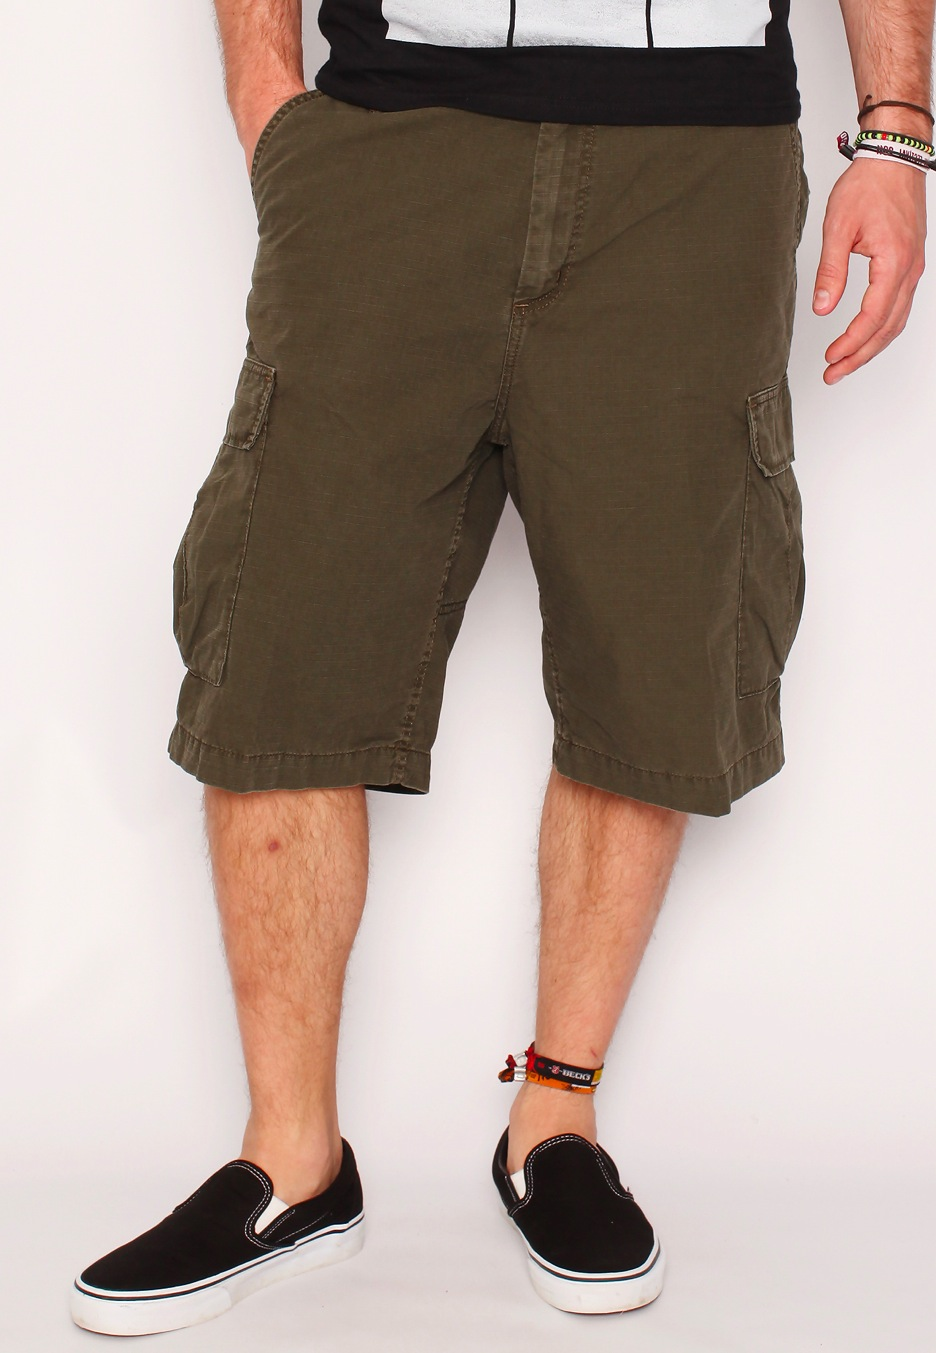 carhartt wip cargo bermuda ripstop cypress stone washed shorts boutique streetwear. Black Bedroom Furniture Sets. Home Design Ideas